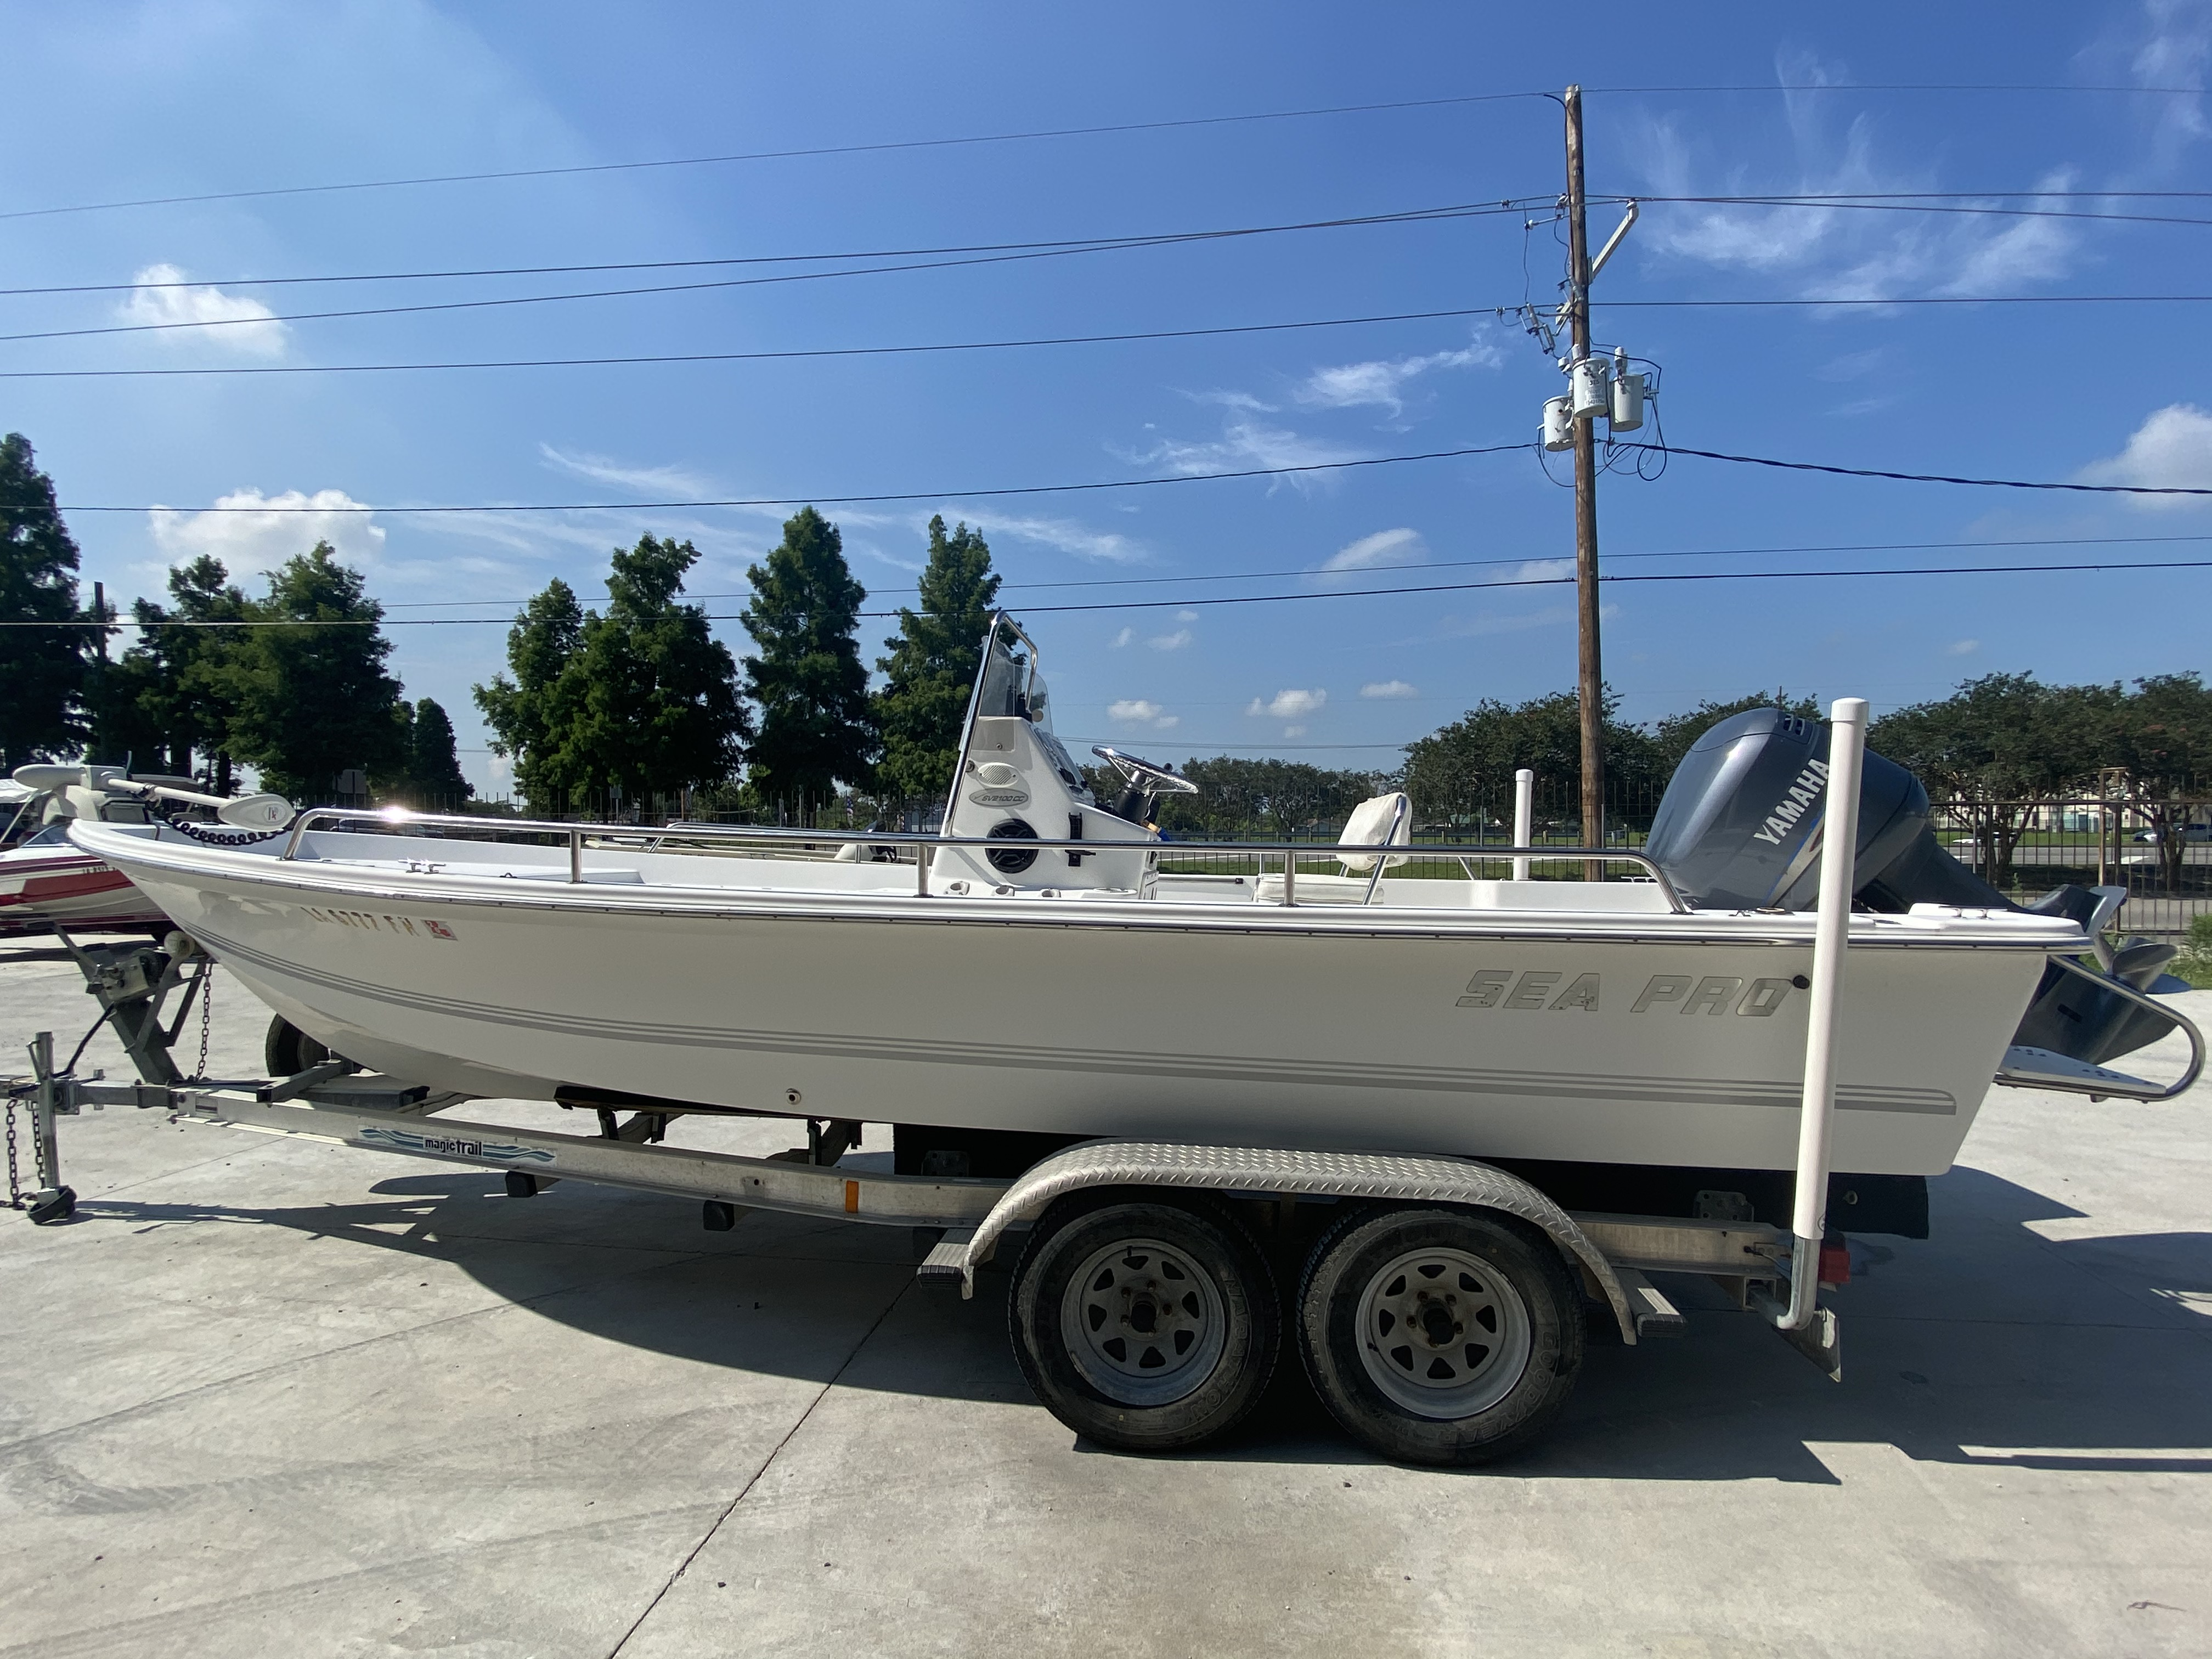 2003 Sea Pro boat for sale, model of the boat is SV2100 & Image # 4 of 12